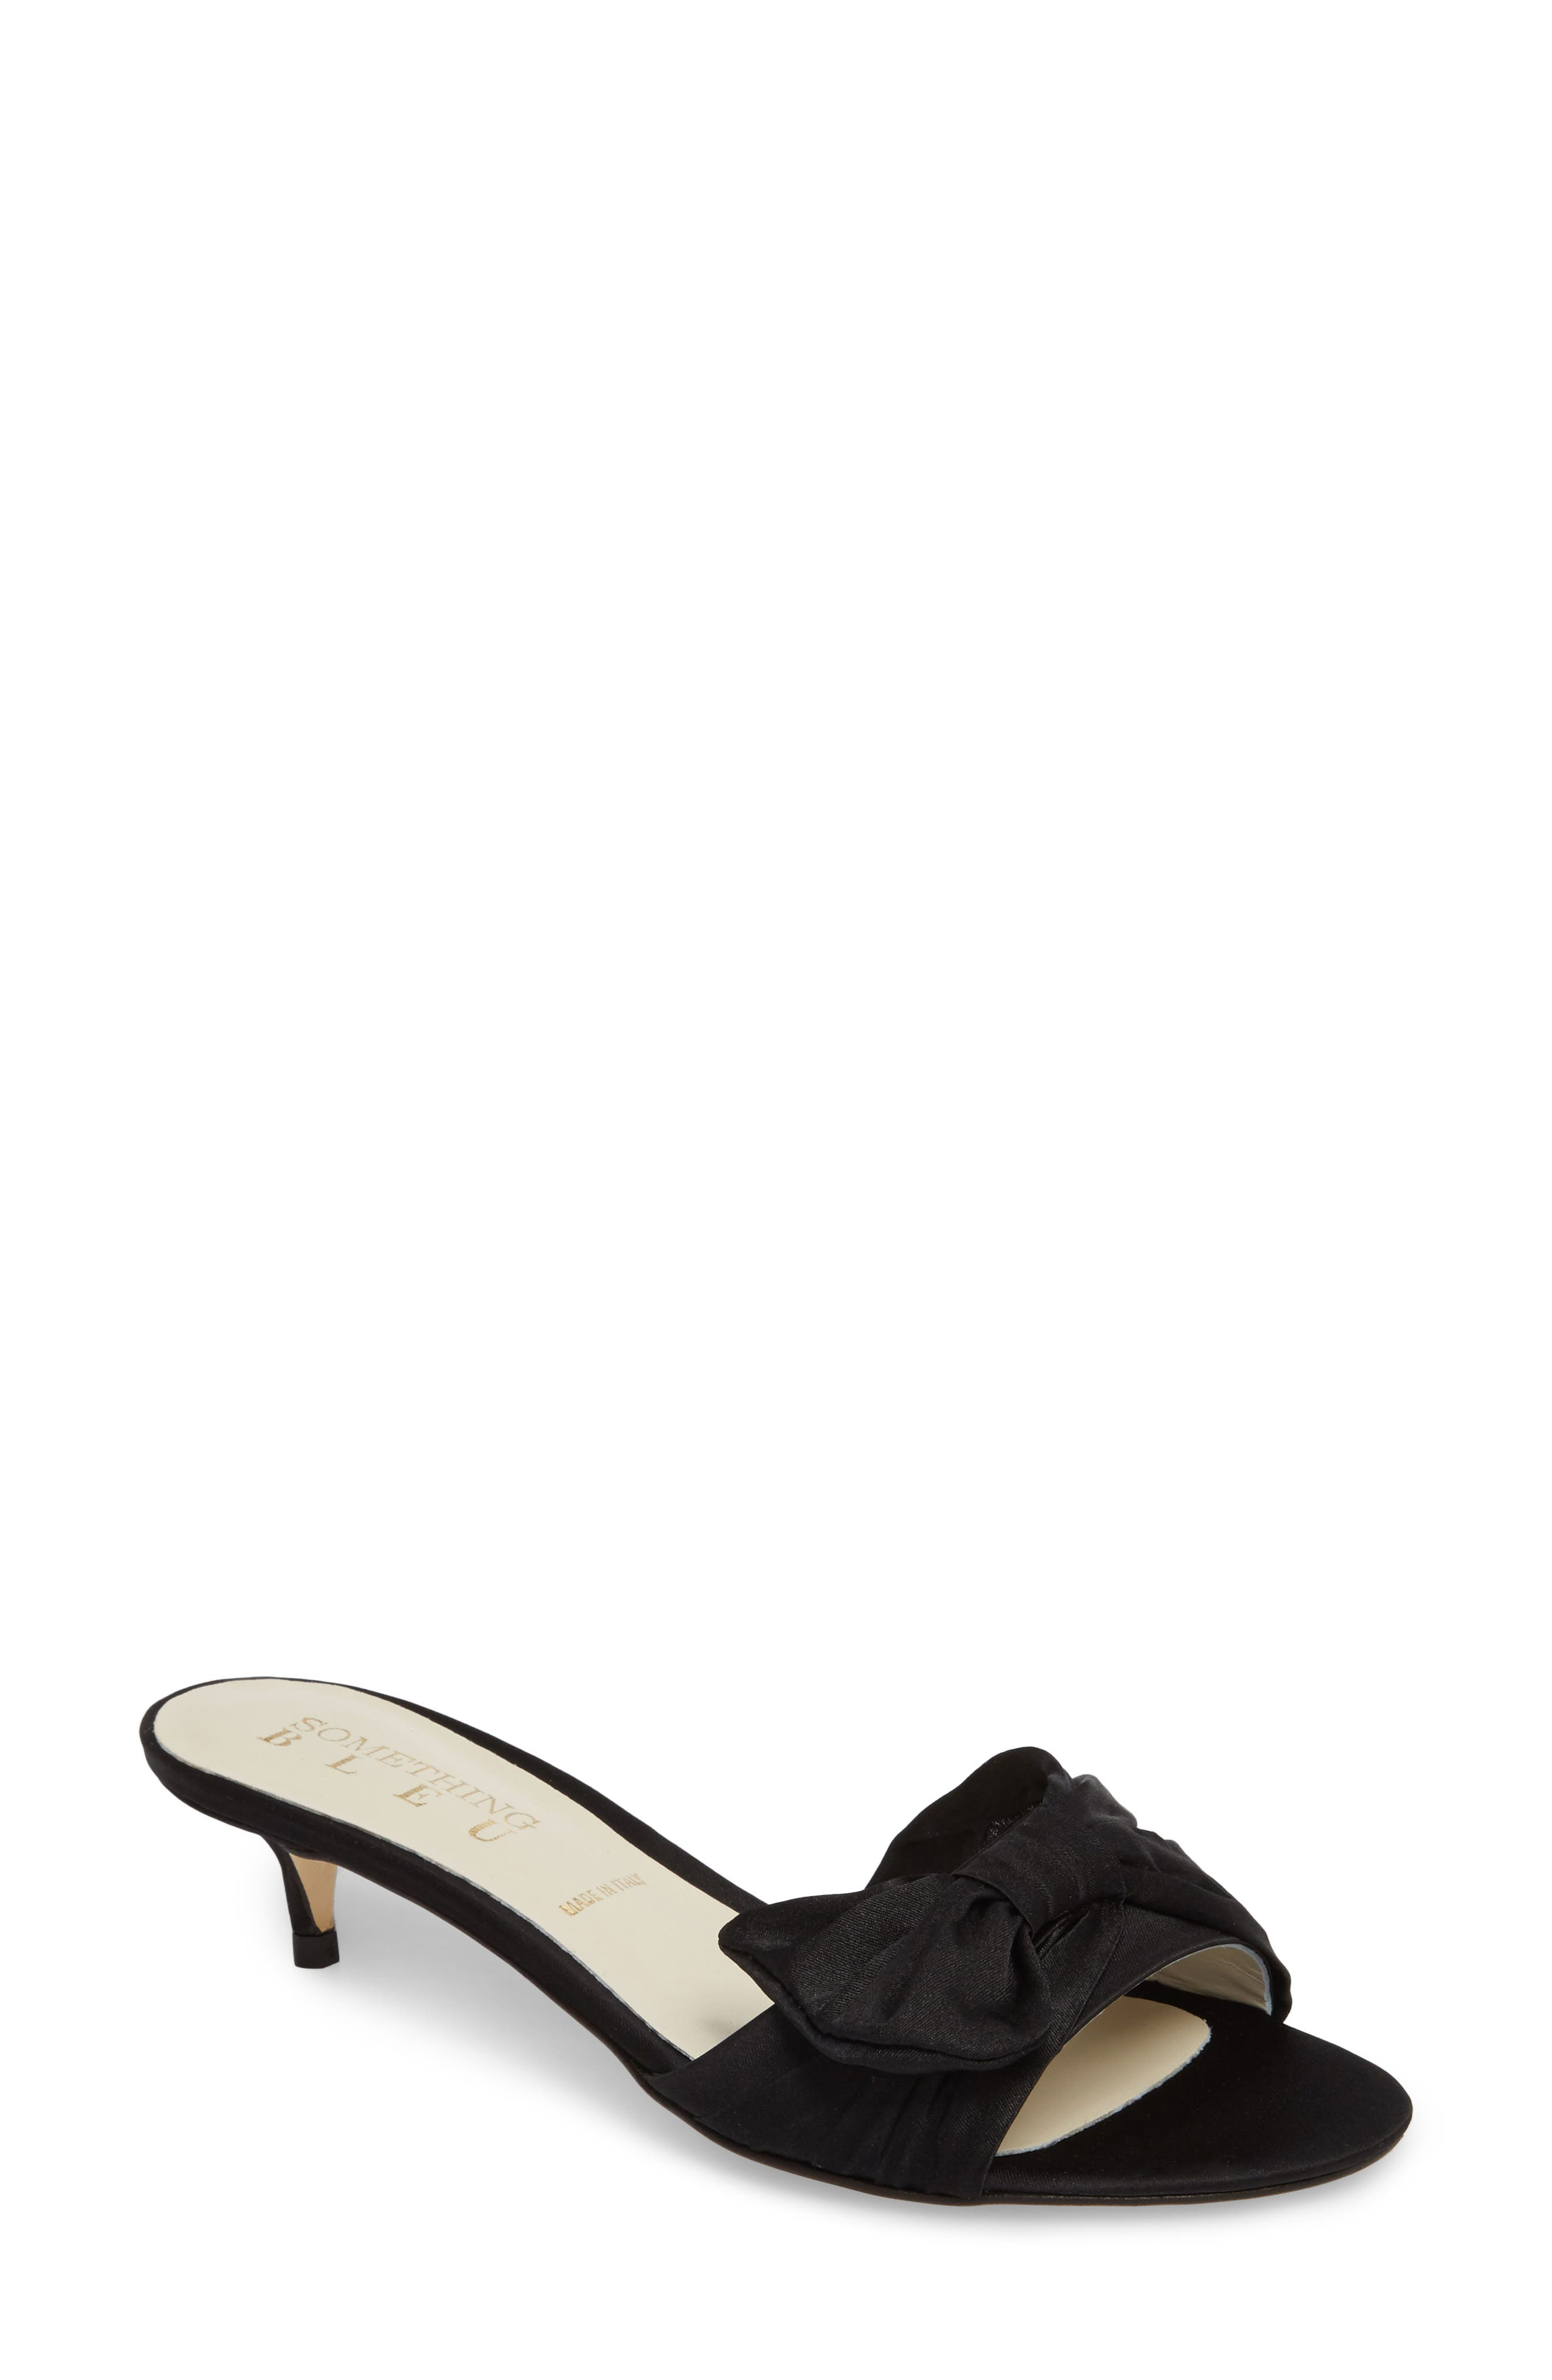 SOMETHING BLEU Butterfly Bow Mule, Main, color, 001